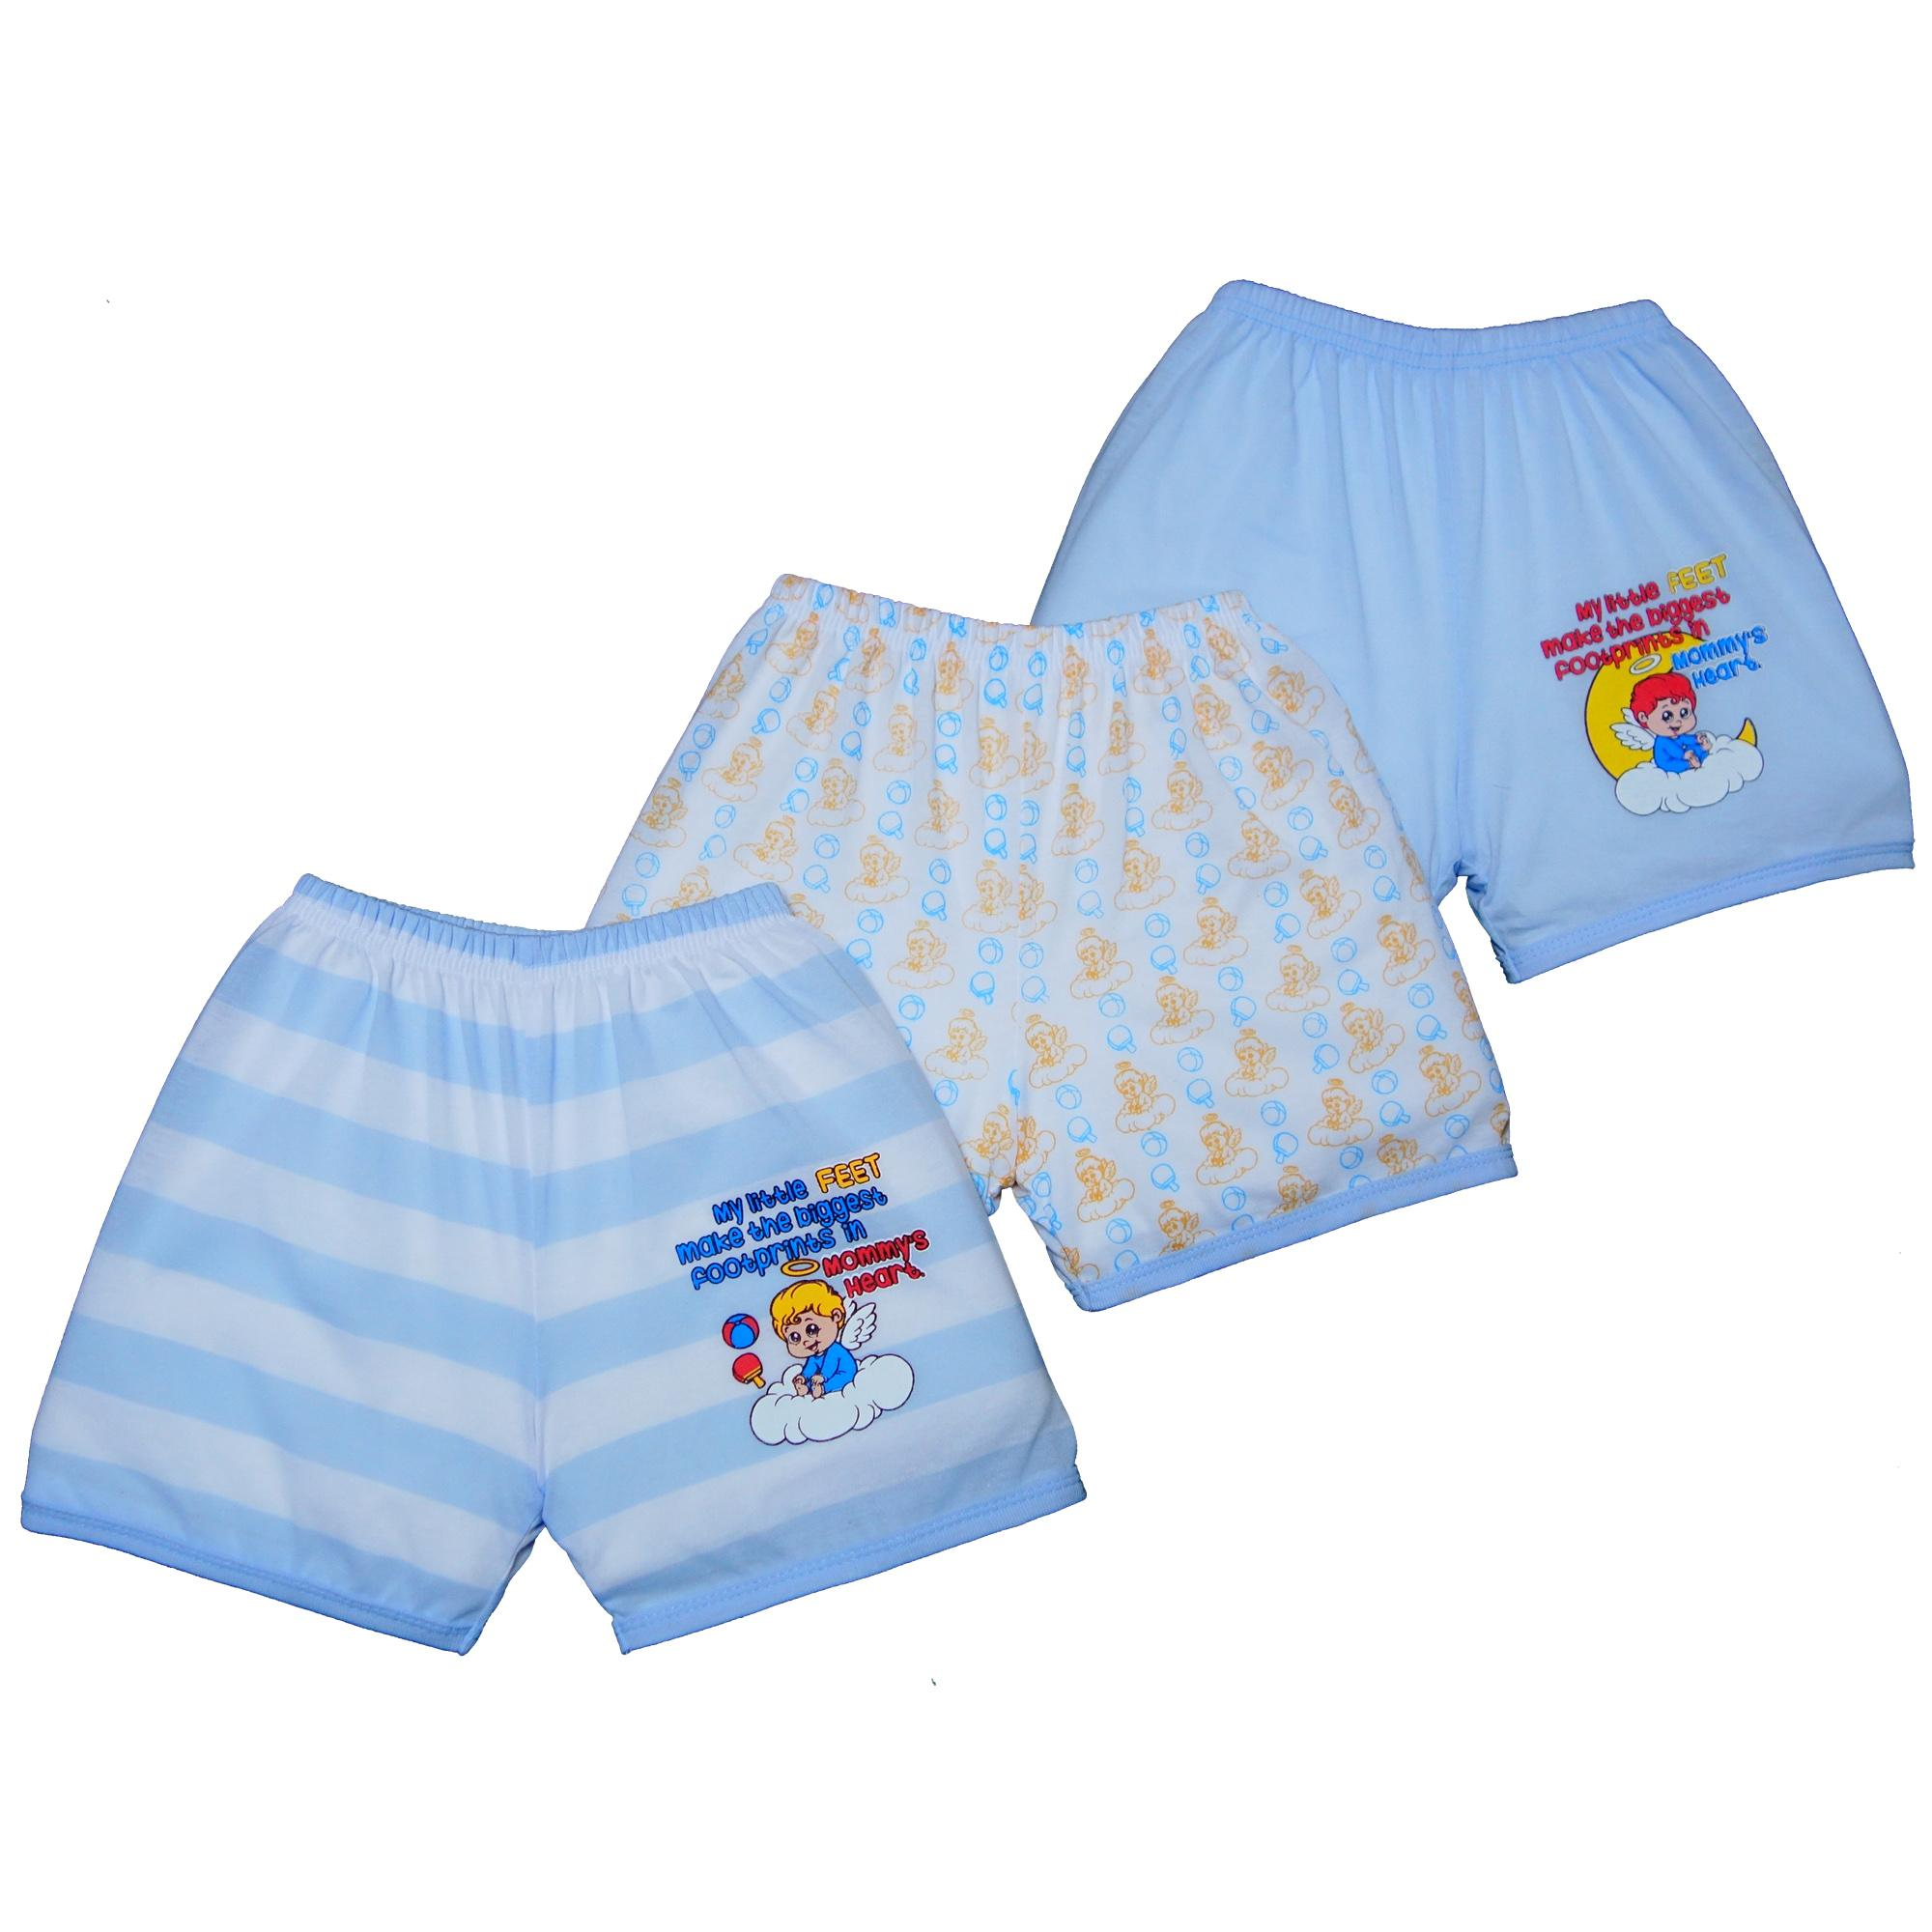 Froshie 3-Piece Baby Cotton Shorts (my Little Feet Make The Biggest Footprints In Mommys Heart - Boys) By Froshie.